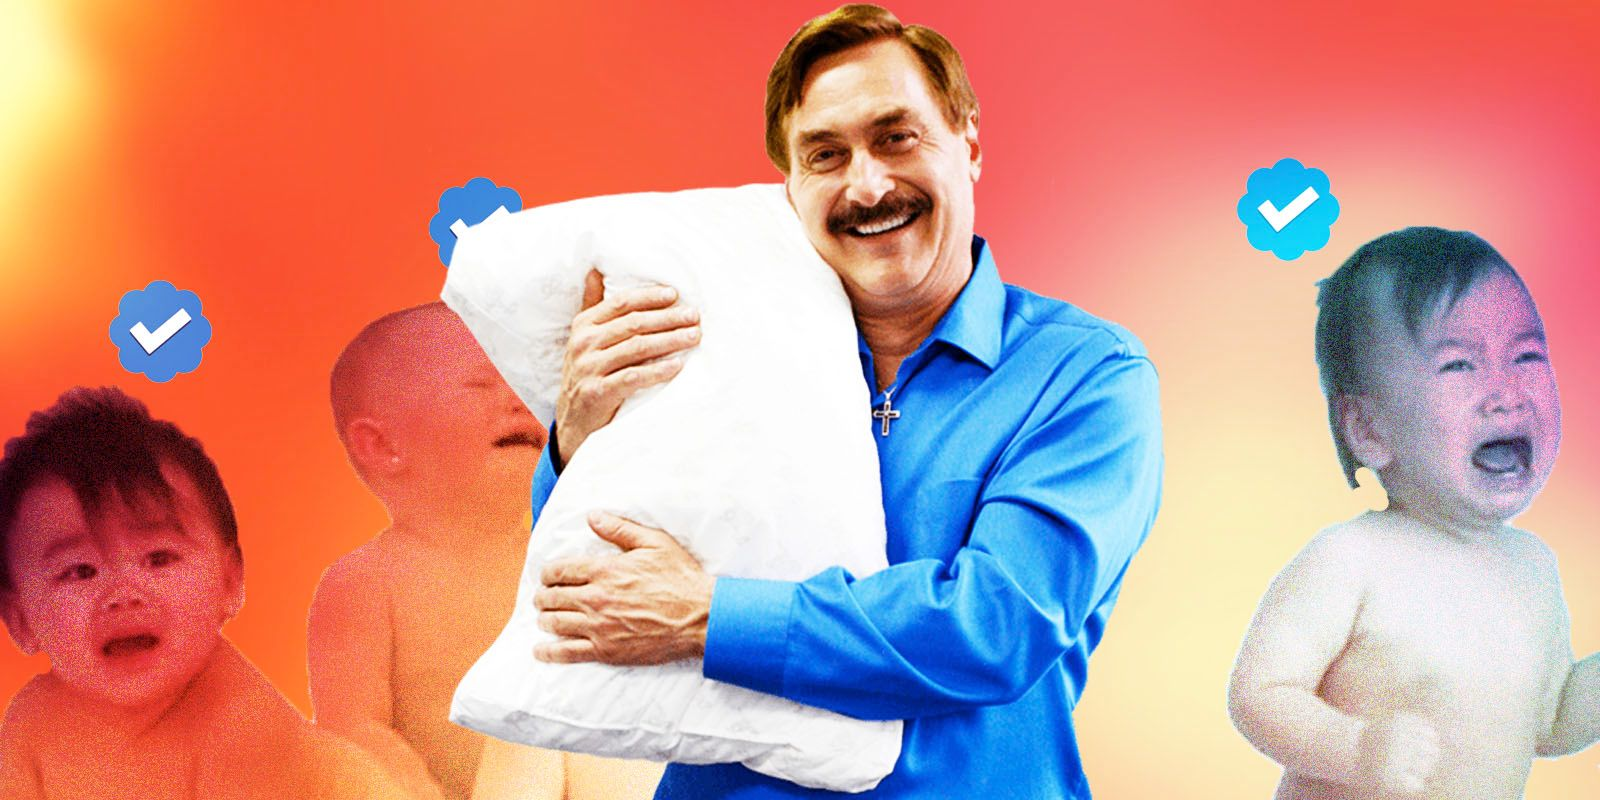 The media mocks the My Pillow guy as he helps save America